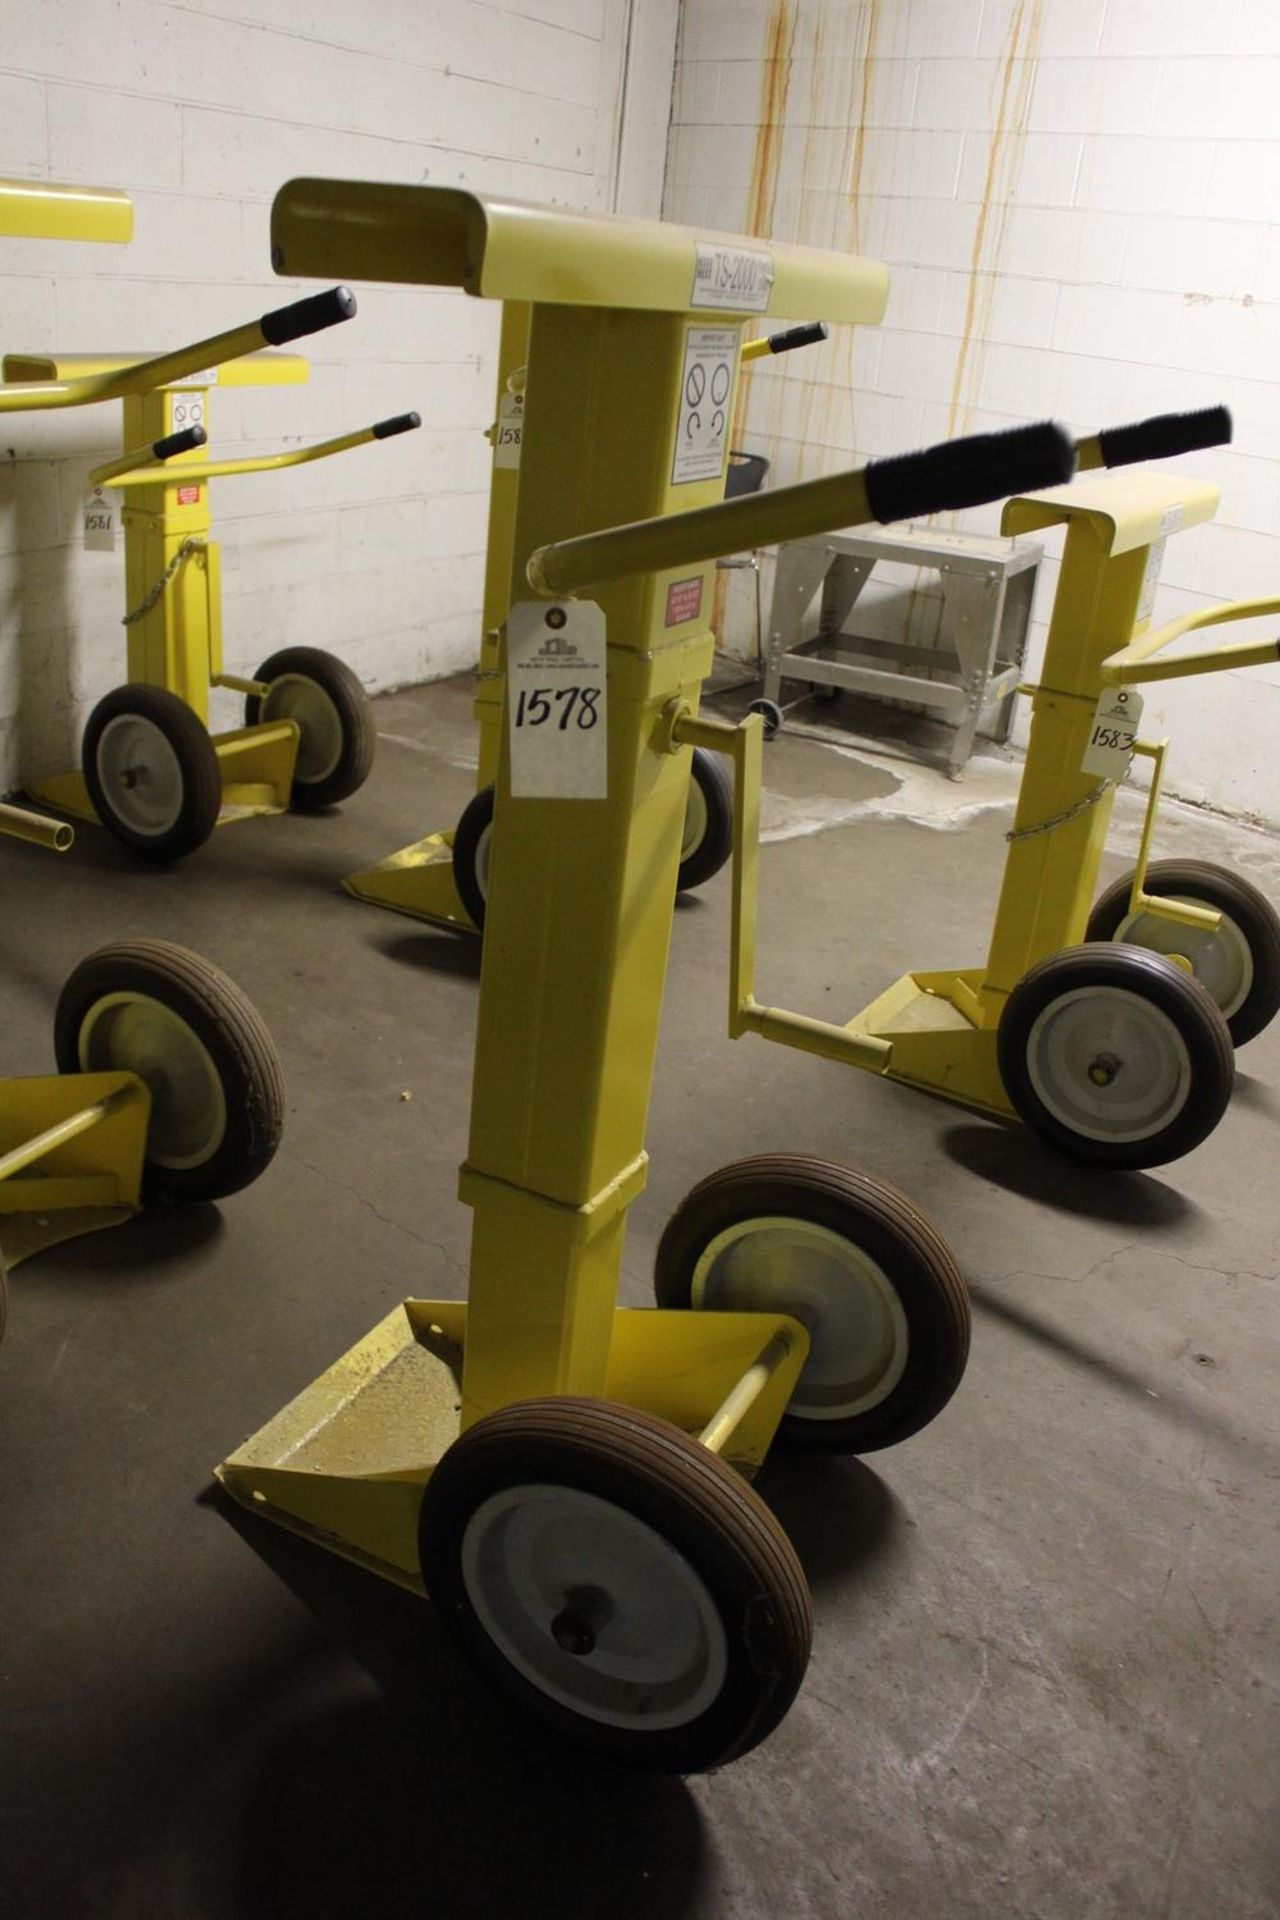 Lot 1578 - Rite Hite TS-2000 Trailer Stand - Subject to Bulk Bid Lot 15 | Rig Fee: Hand Carry or Contact Rigger